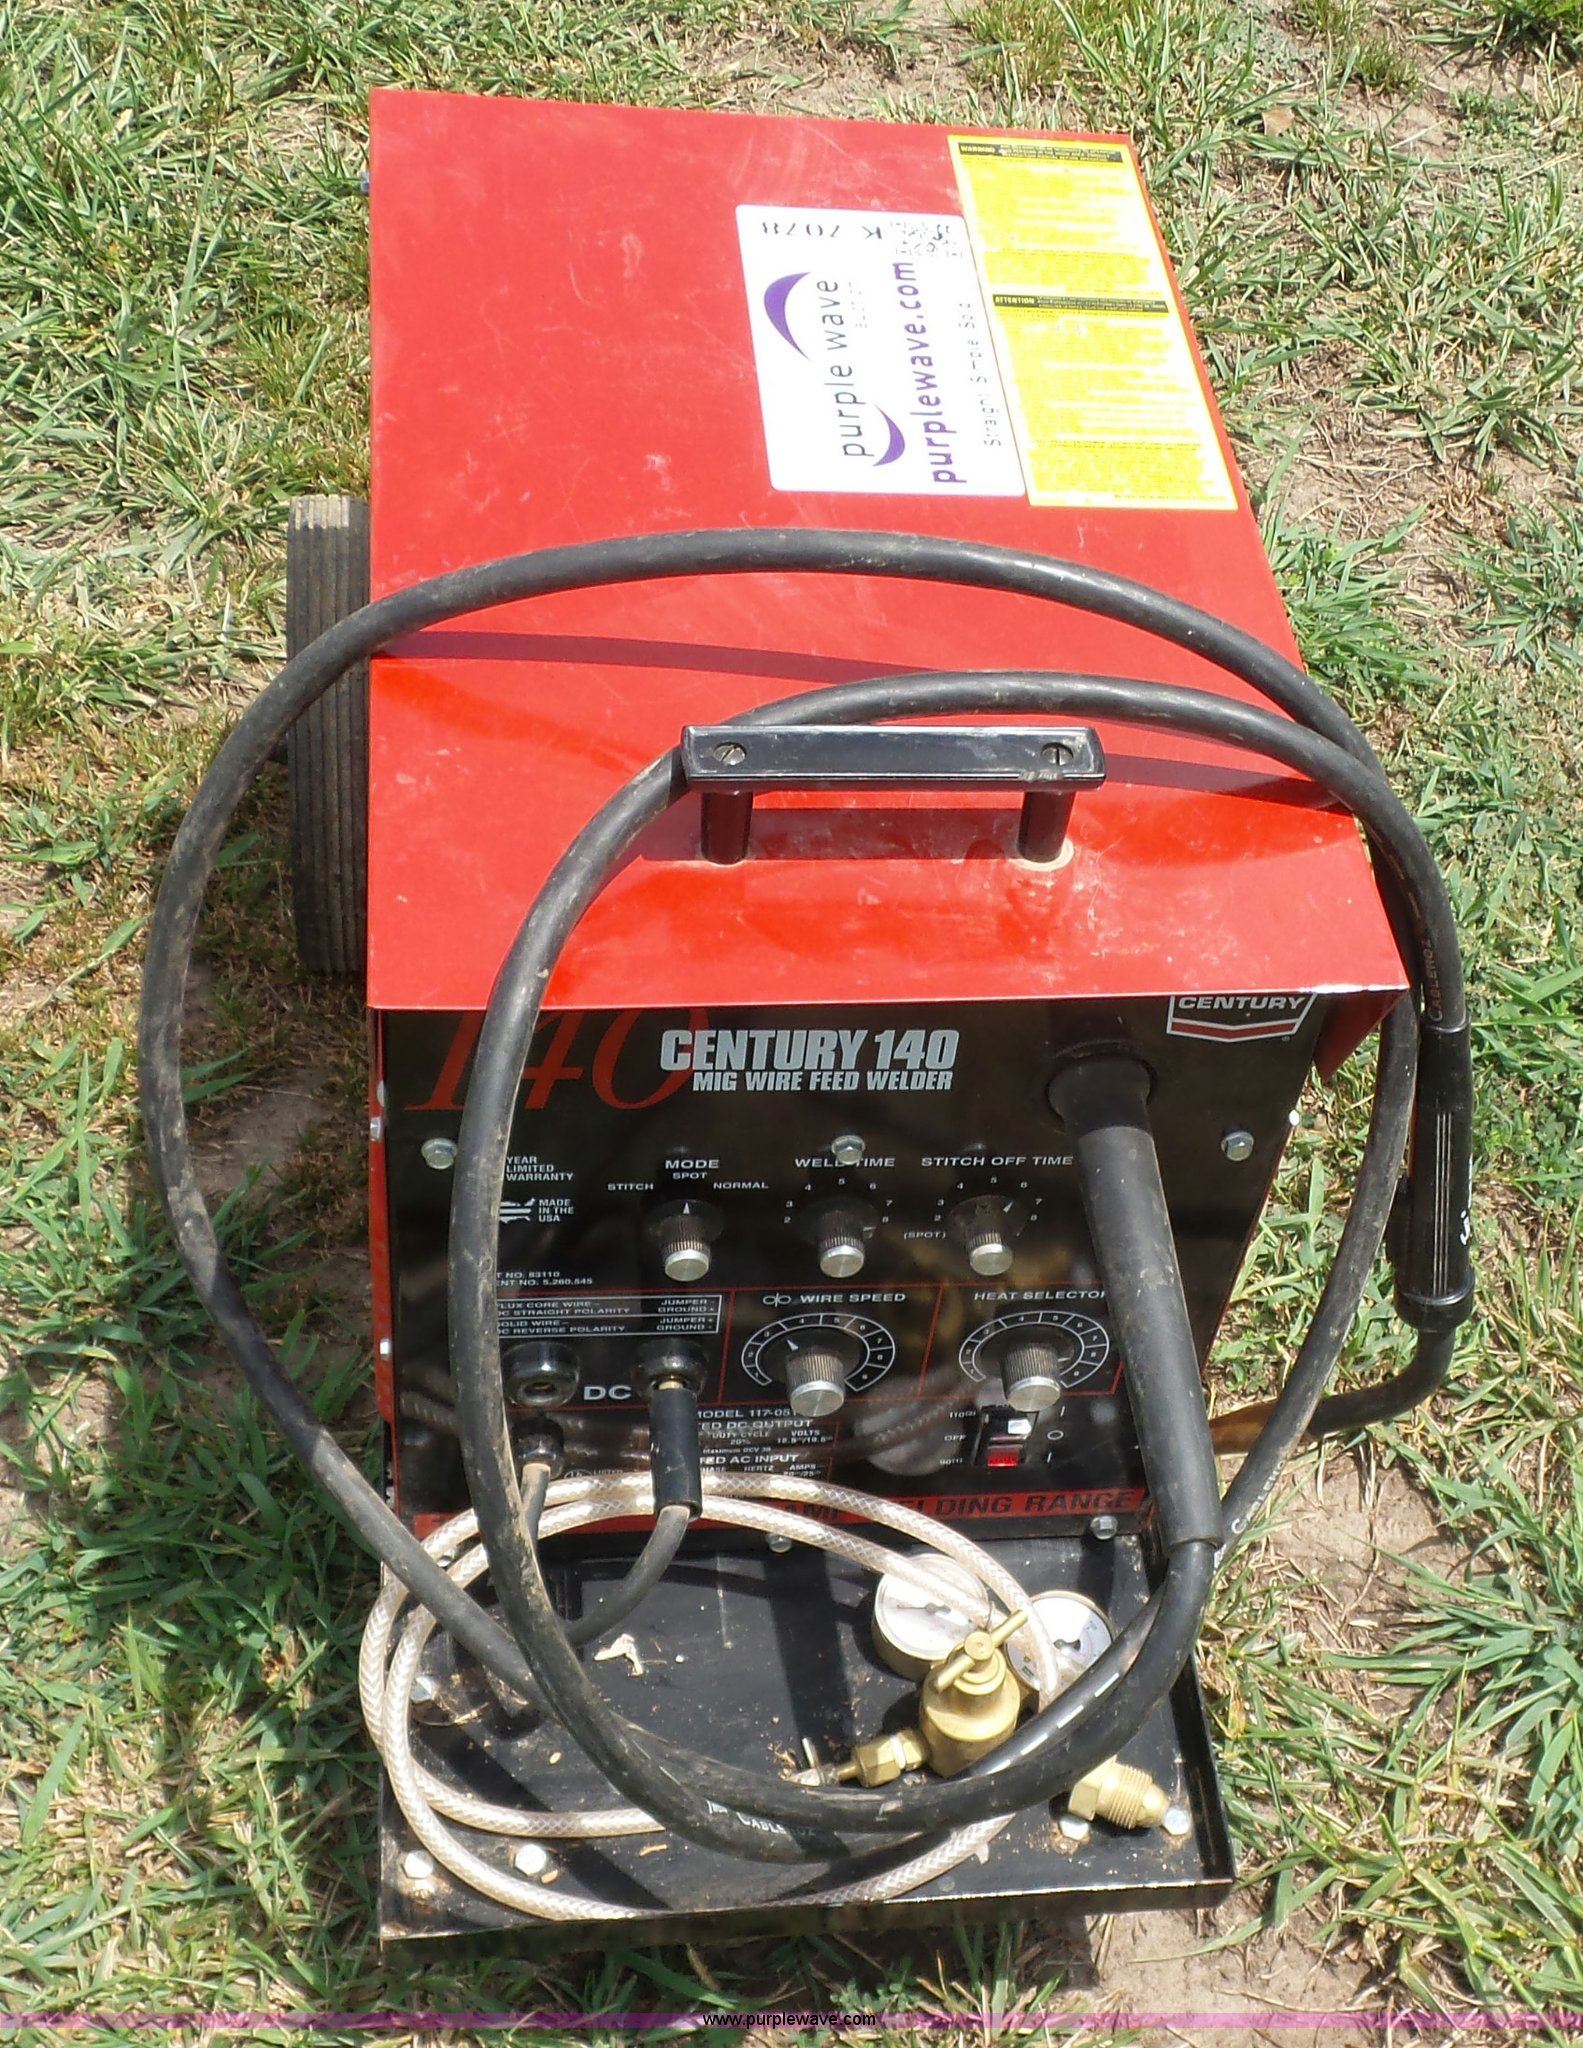 Century Powermate 70 Welder Manual